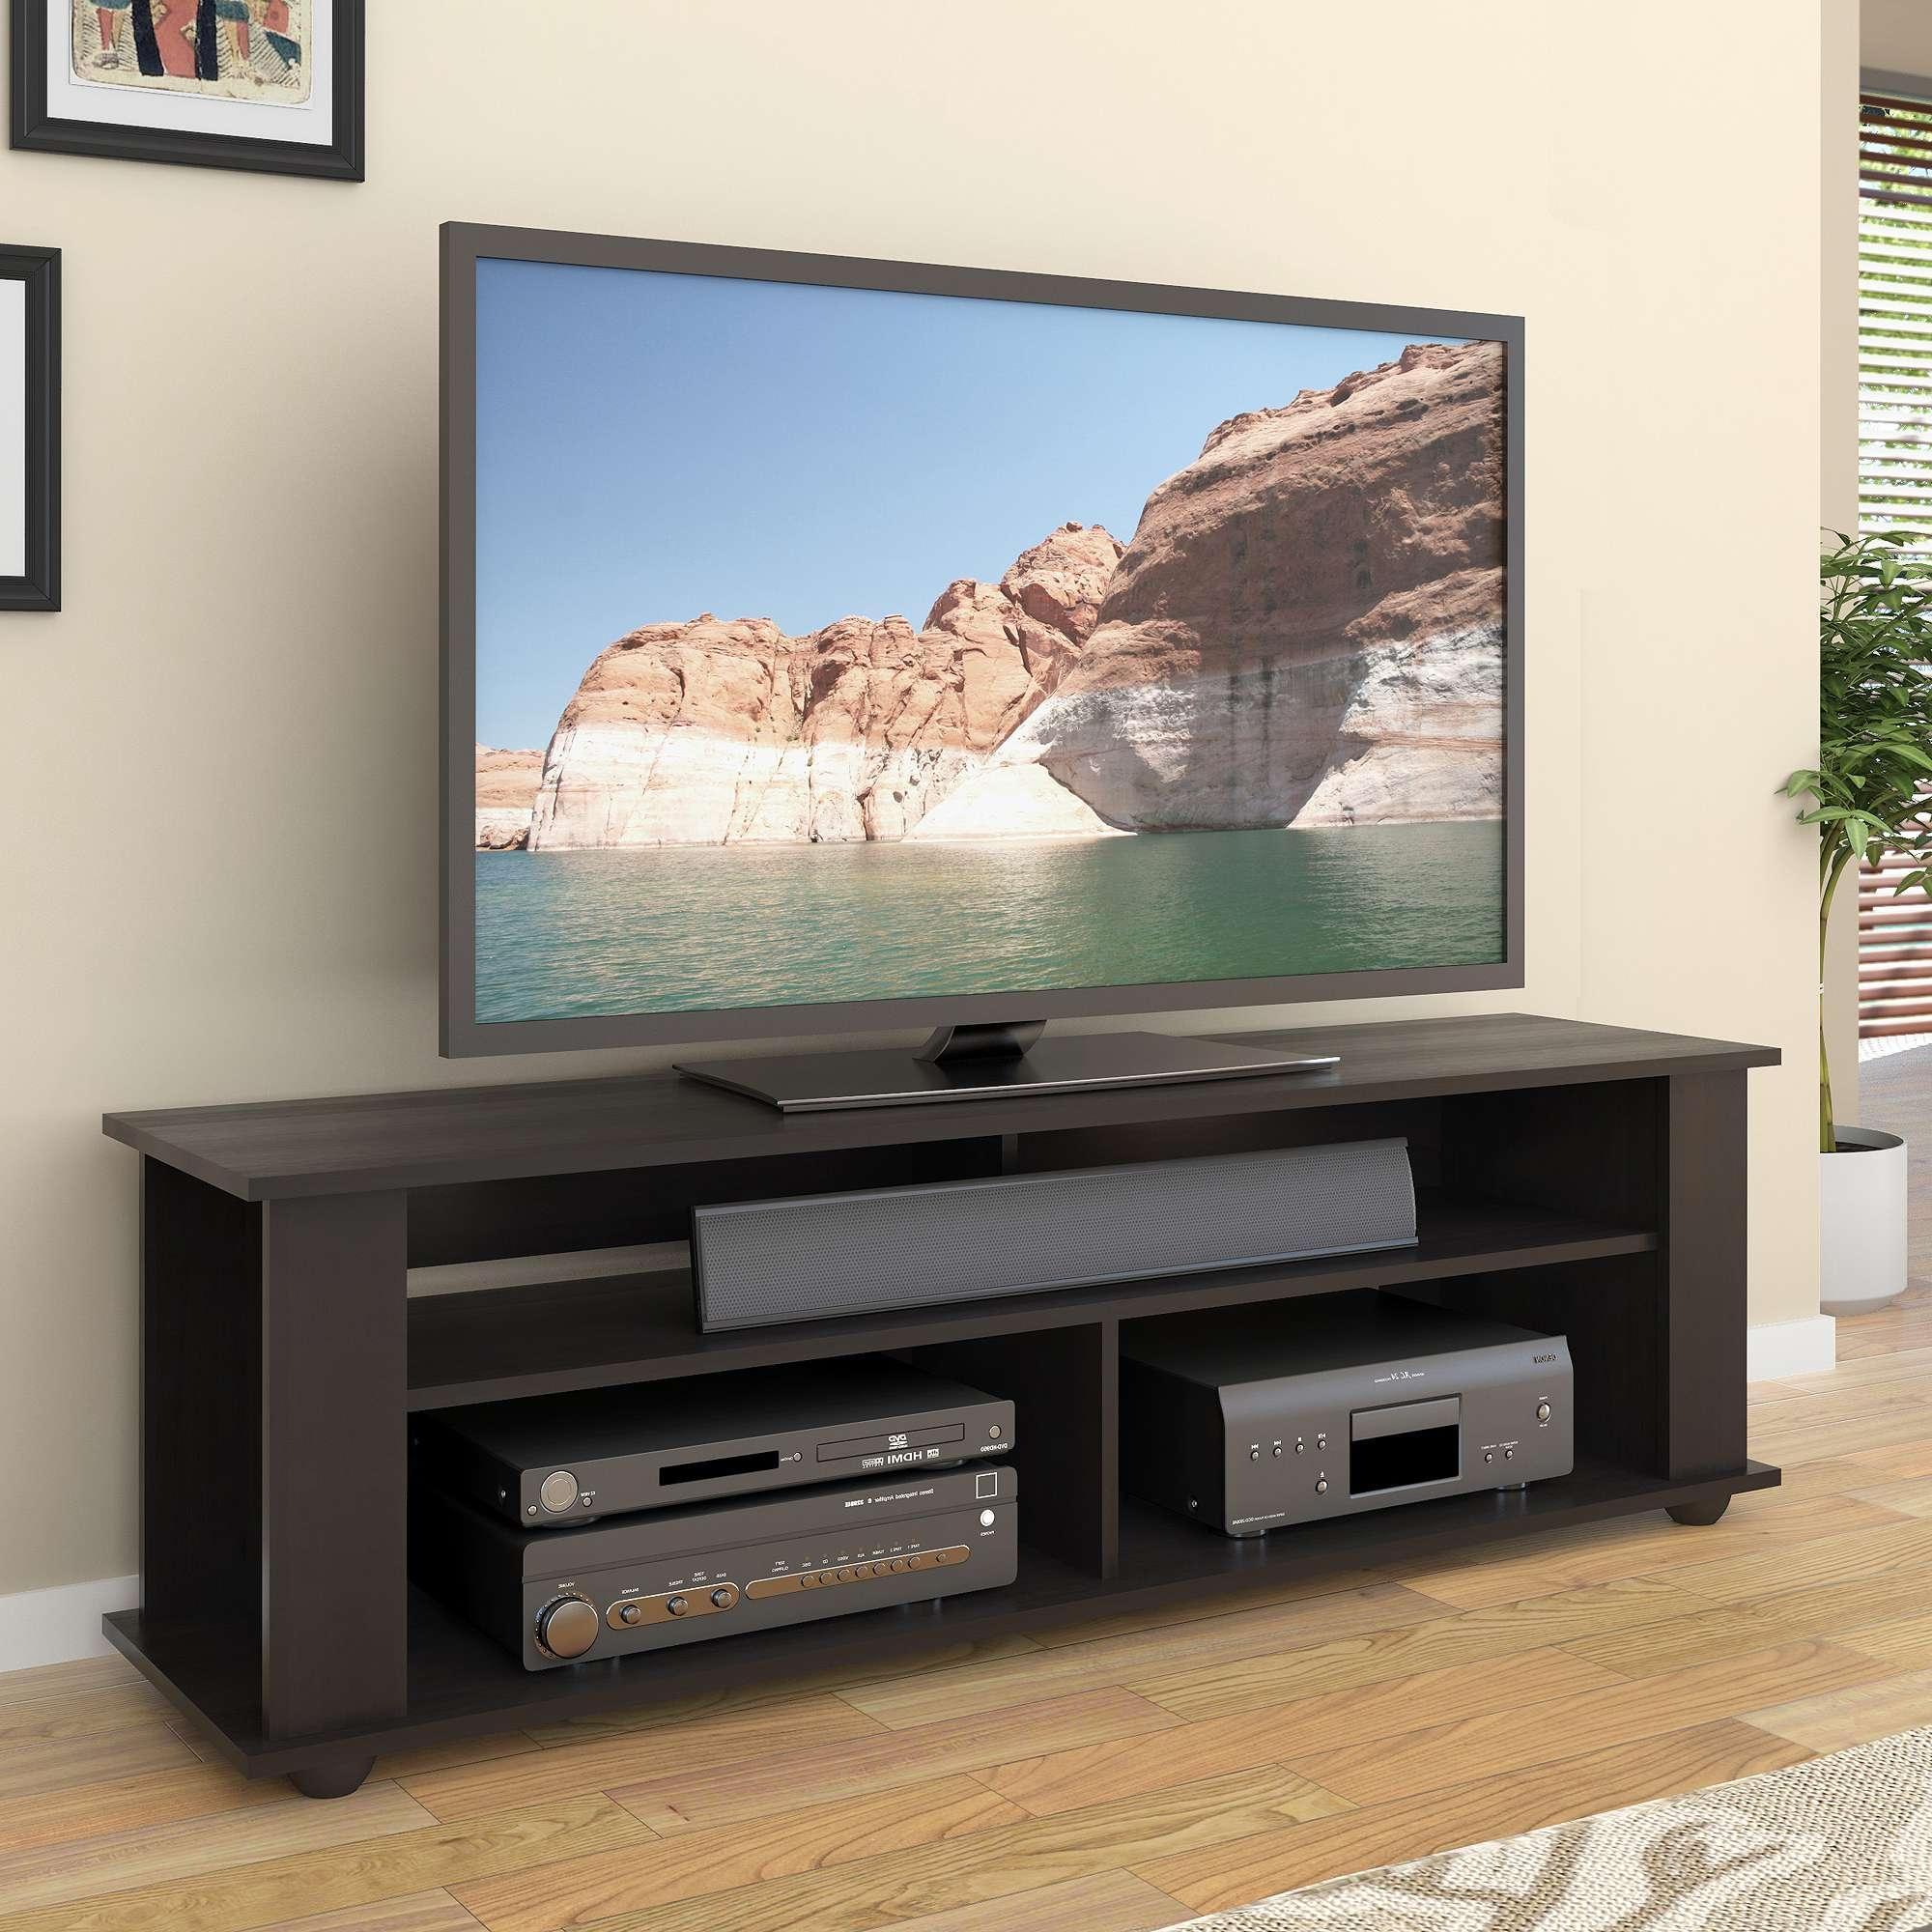 Lovely Tv Stands For 65 Inch Tvs 50 On Small Home Remodel Ideas In Tv Stands For 50 Inch Tvs (View 14 of 15)